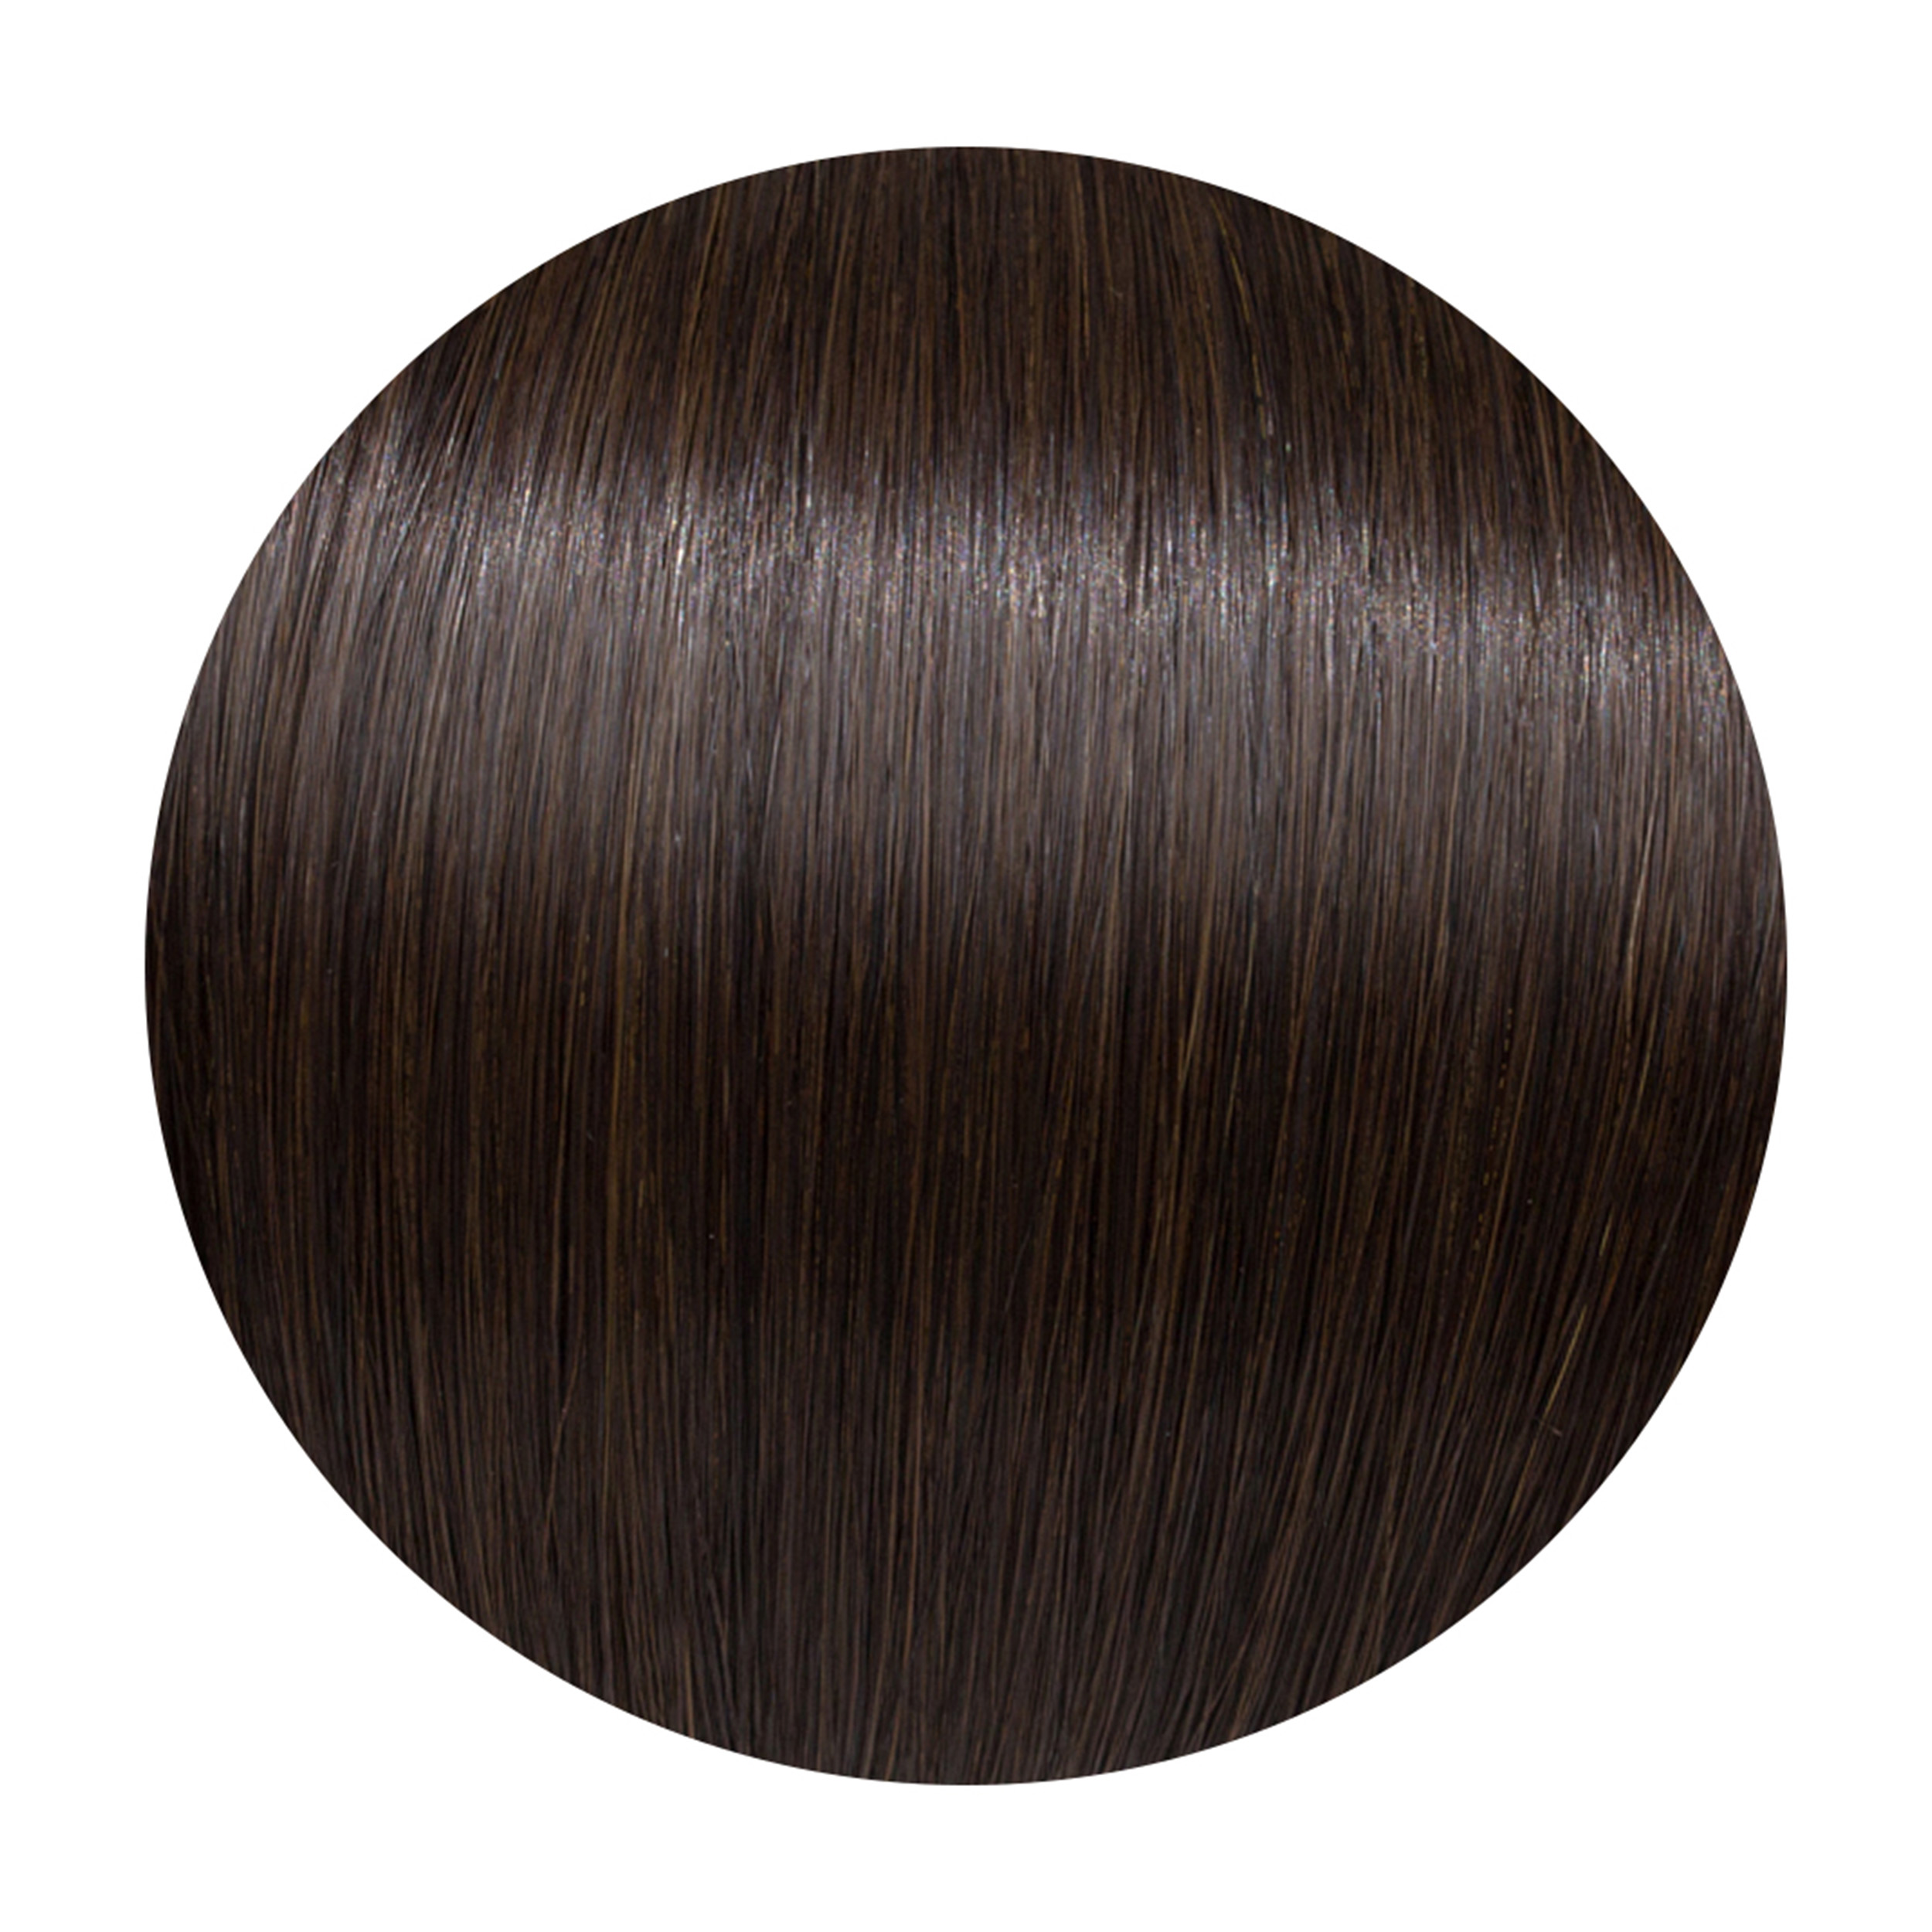 Caviar Human Hair in 1 Piece